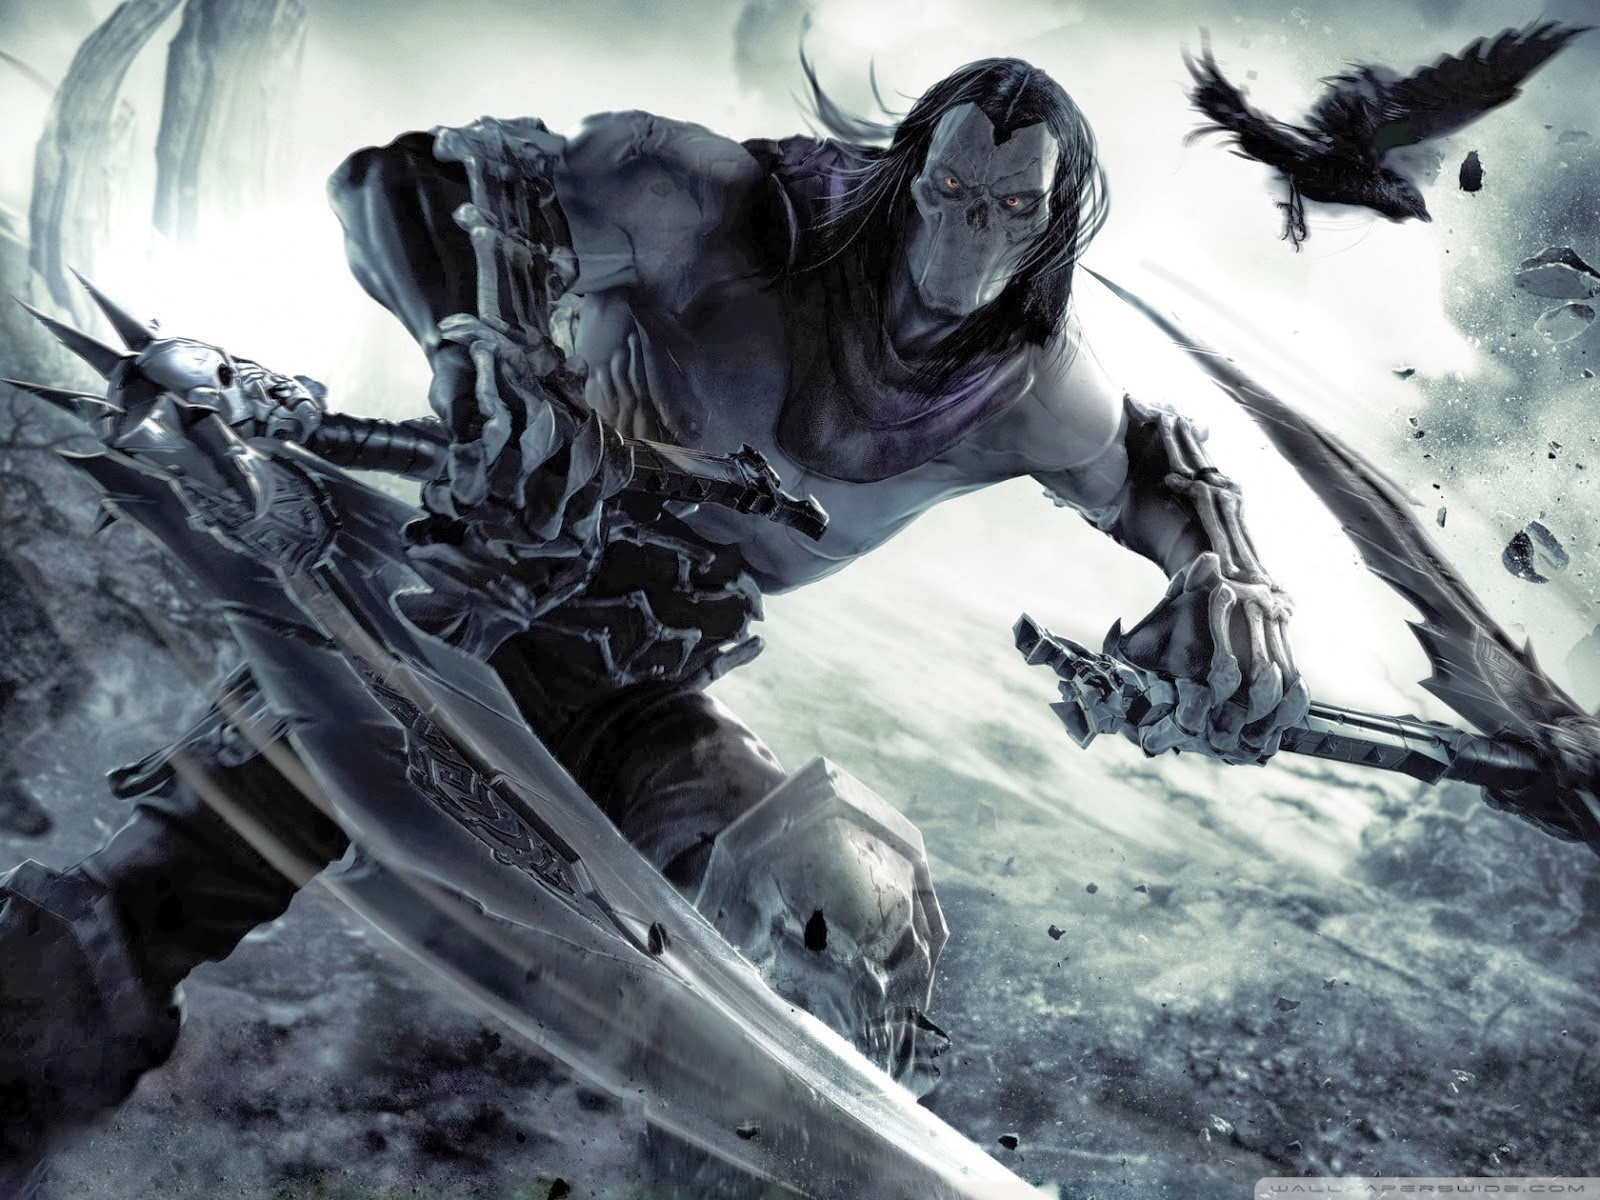 Darksiders II HD Wallpapers   HD Wallpapers Blog 1600x1200